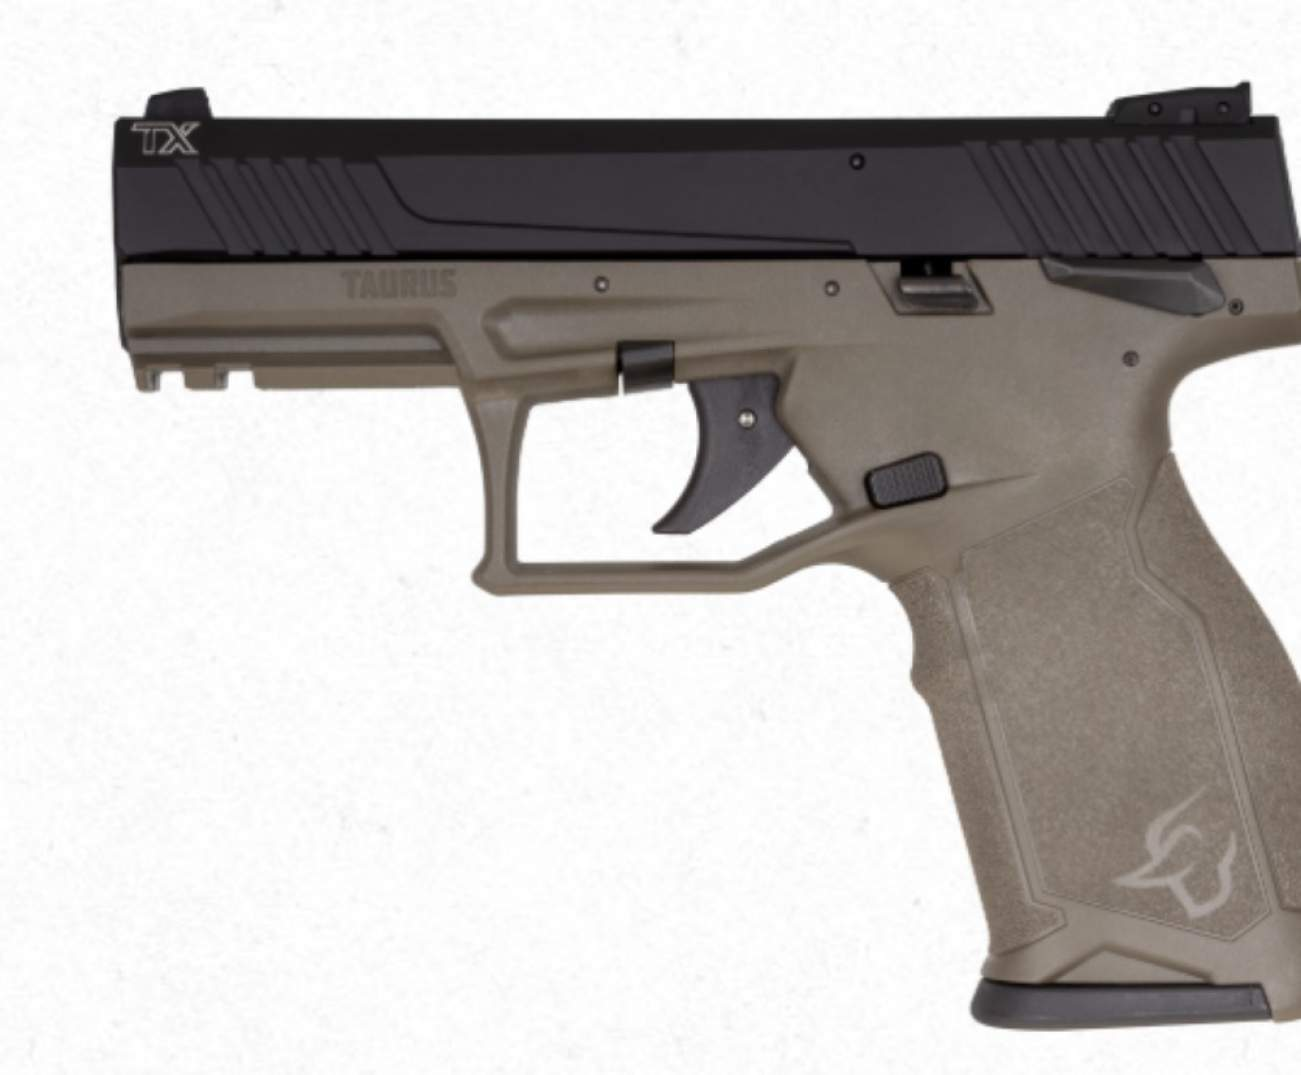 Taurus' Striker-Fired TX-22 .22 Pistol Is Here And Ready To Rock